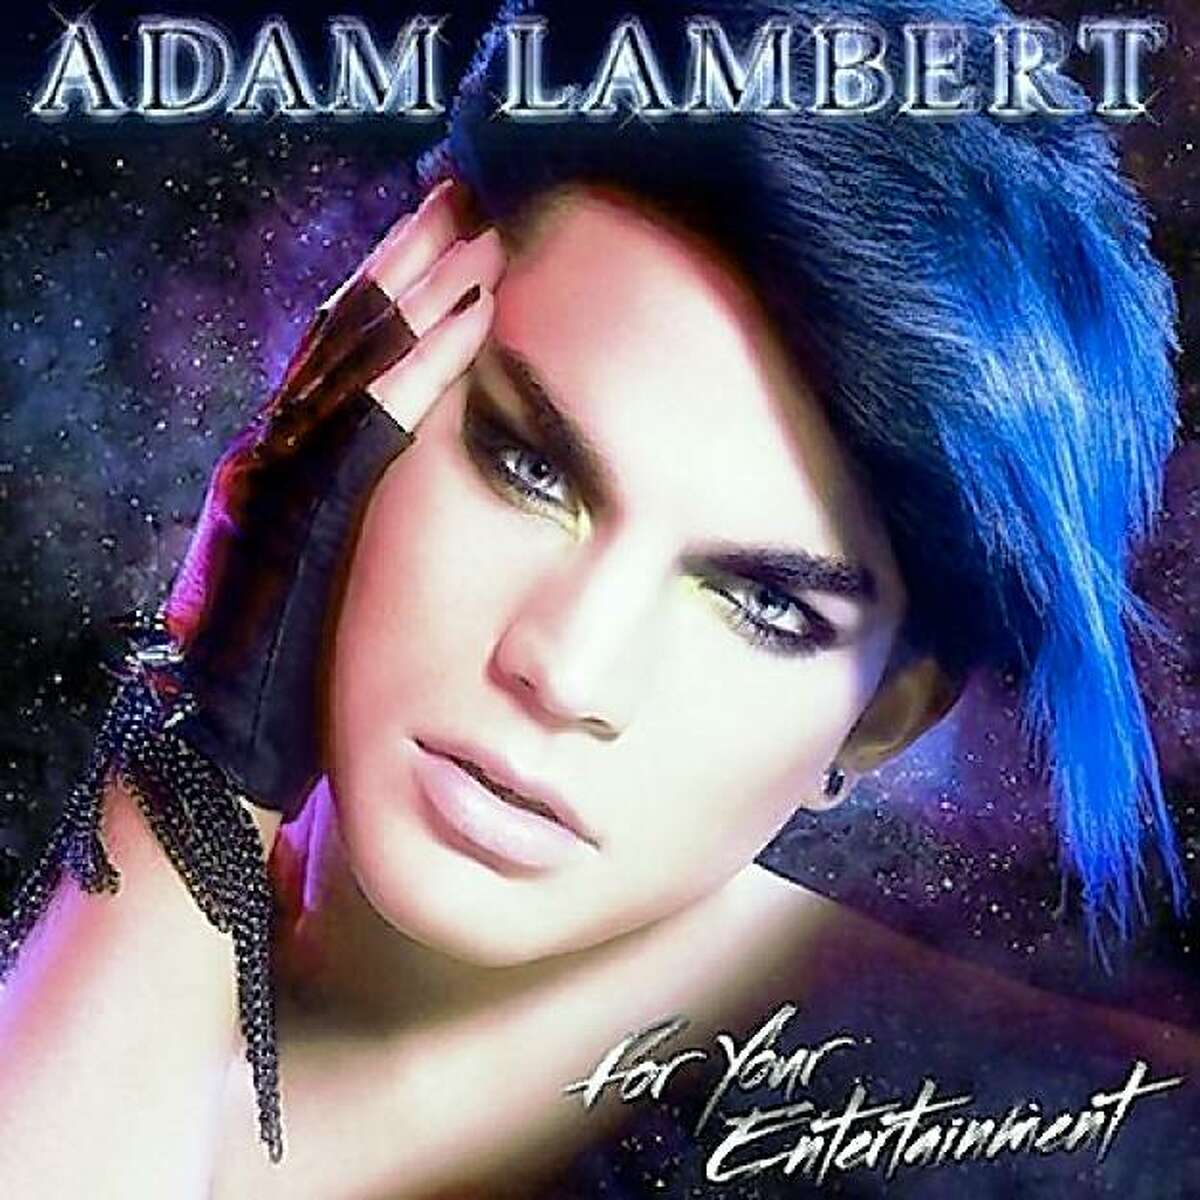 CD cover: Adam Lambert's